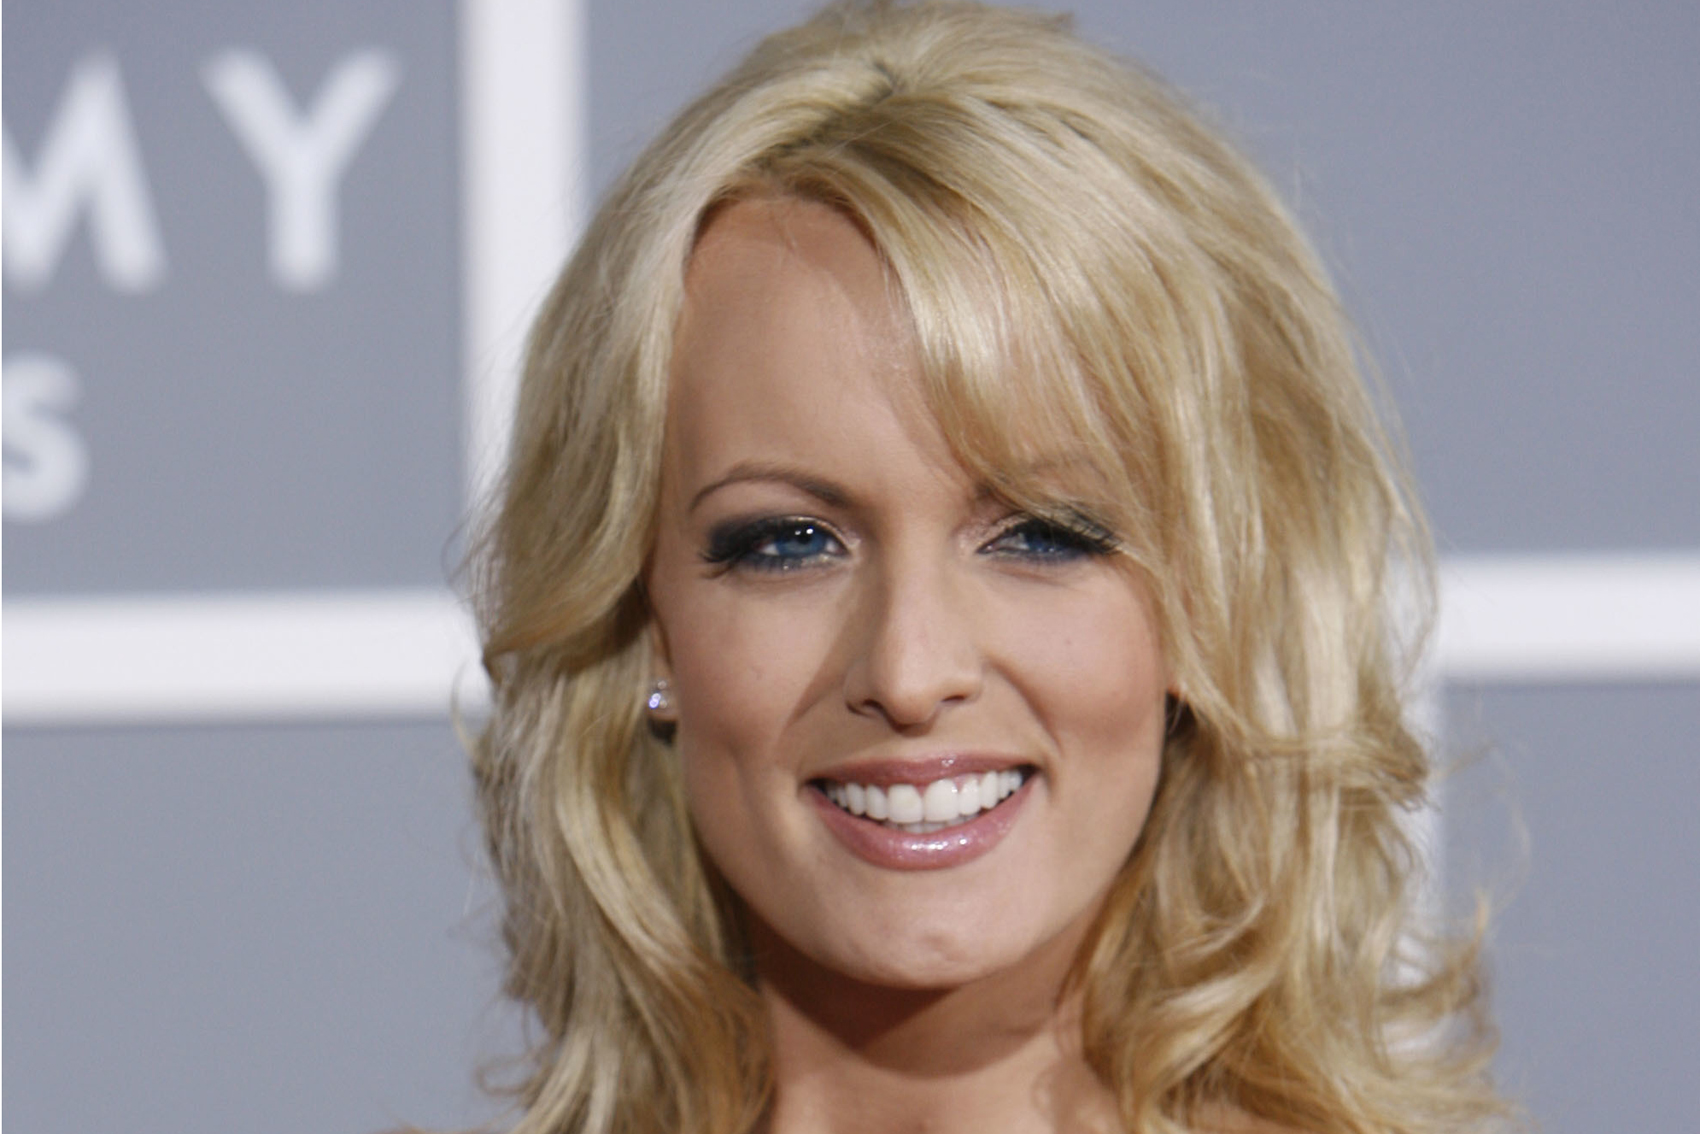 In this Feb. 11, 2007 file photo, Stormy Daniels arrives for the 49th Annual Grammy Awards in Los Angeles. (Matt Sayles/AP)